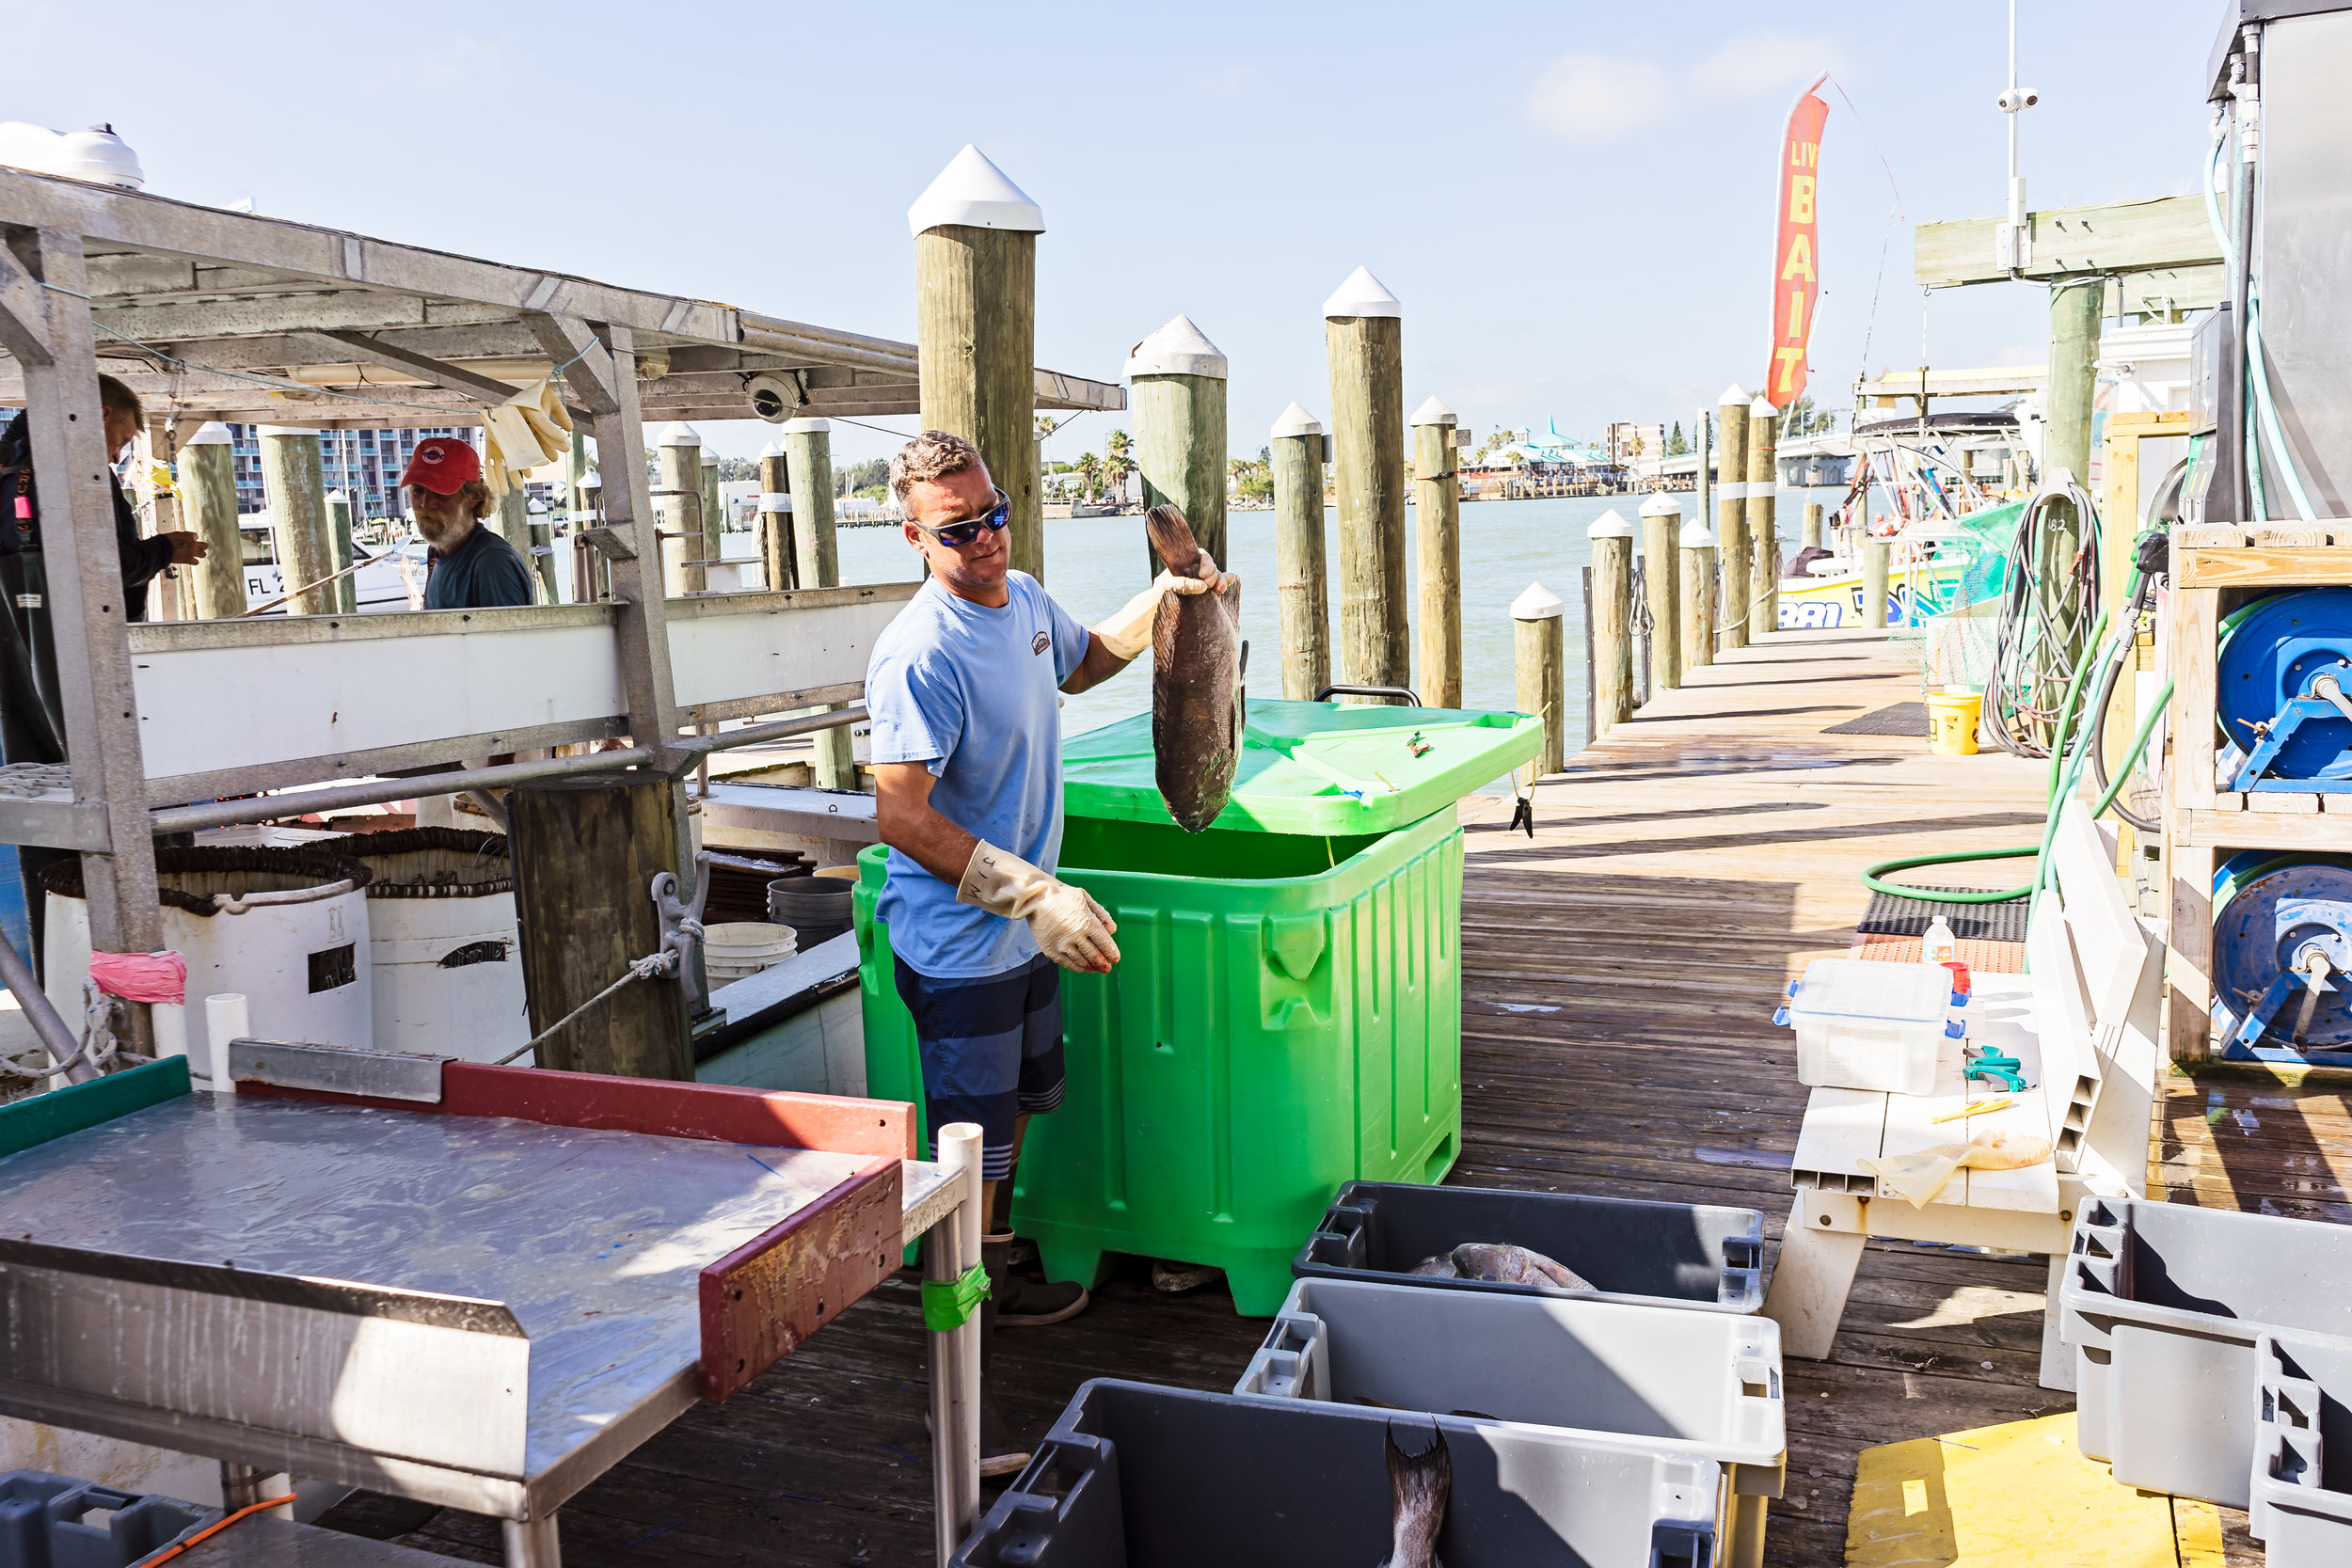 Chris Zook moving fish from the large container to a smaller bin.